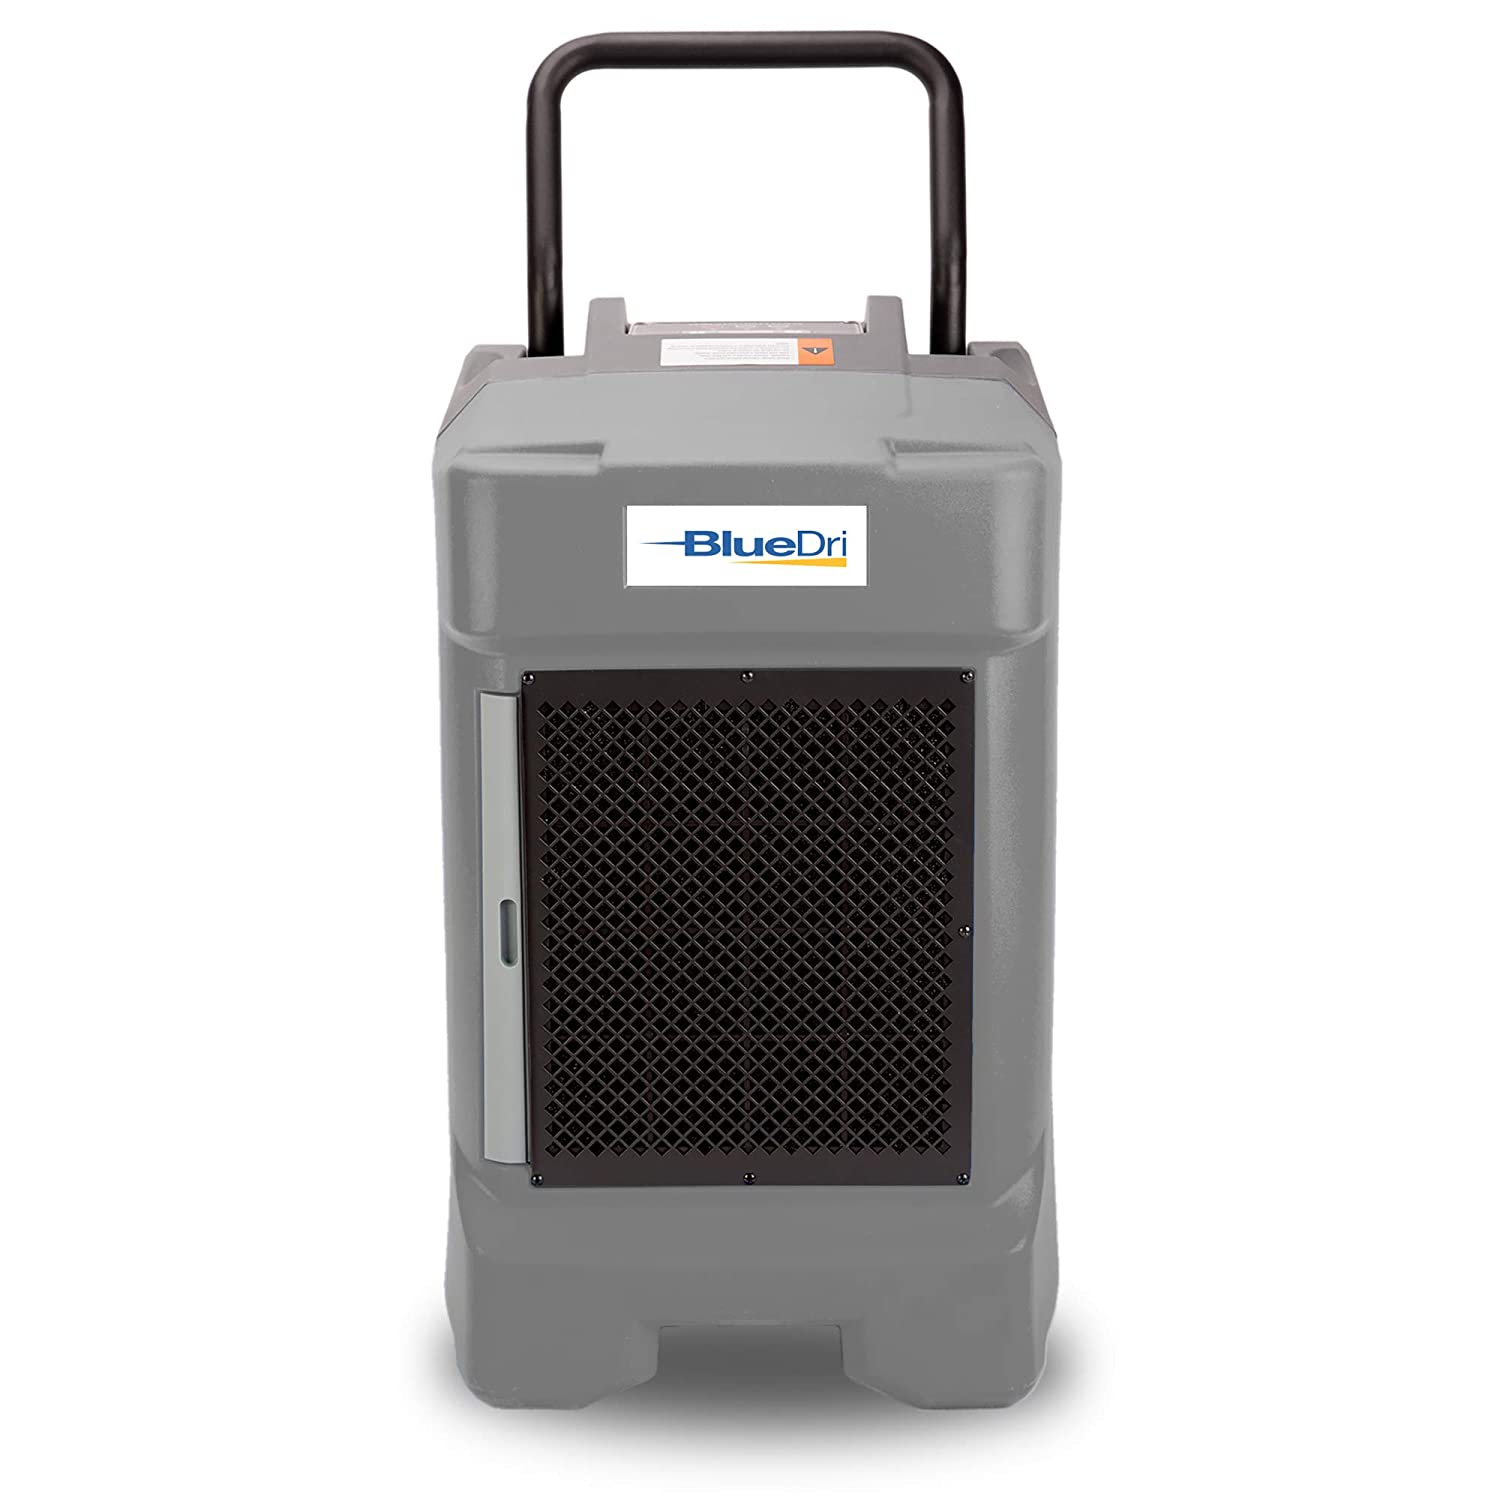 BlueDri BD130P BD-130P 225PPD Industrial Commercial Dehumidifier with Hose for Basements in Homes and Job Sites Grey